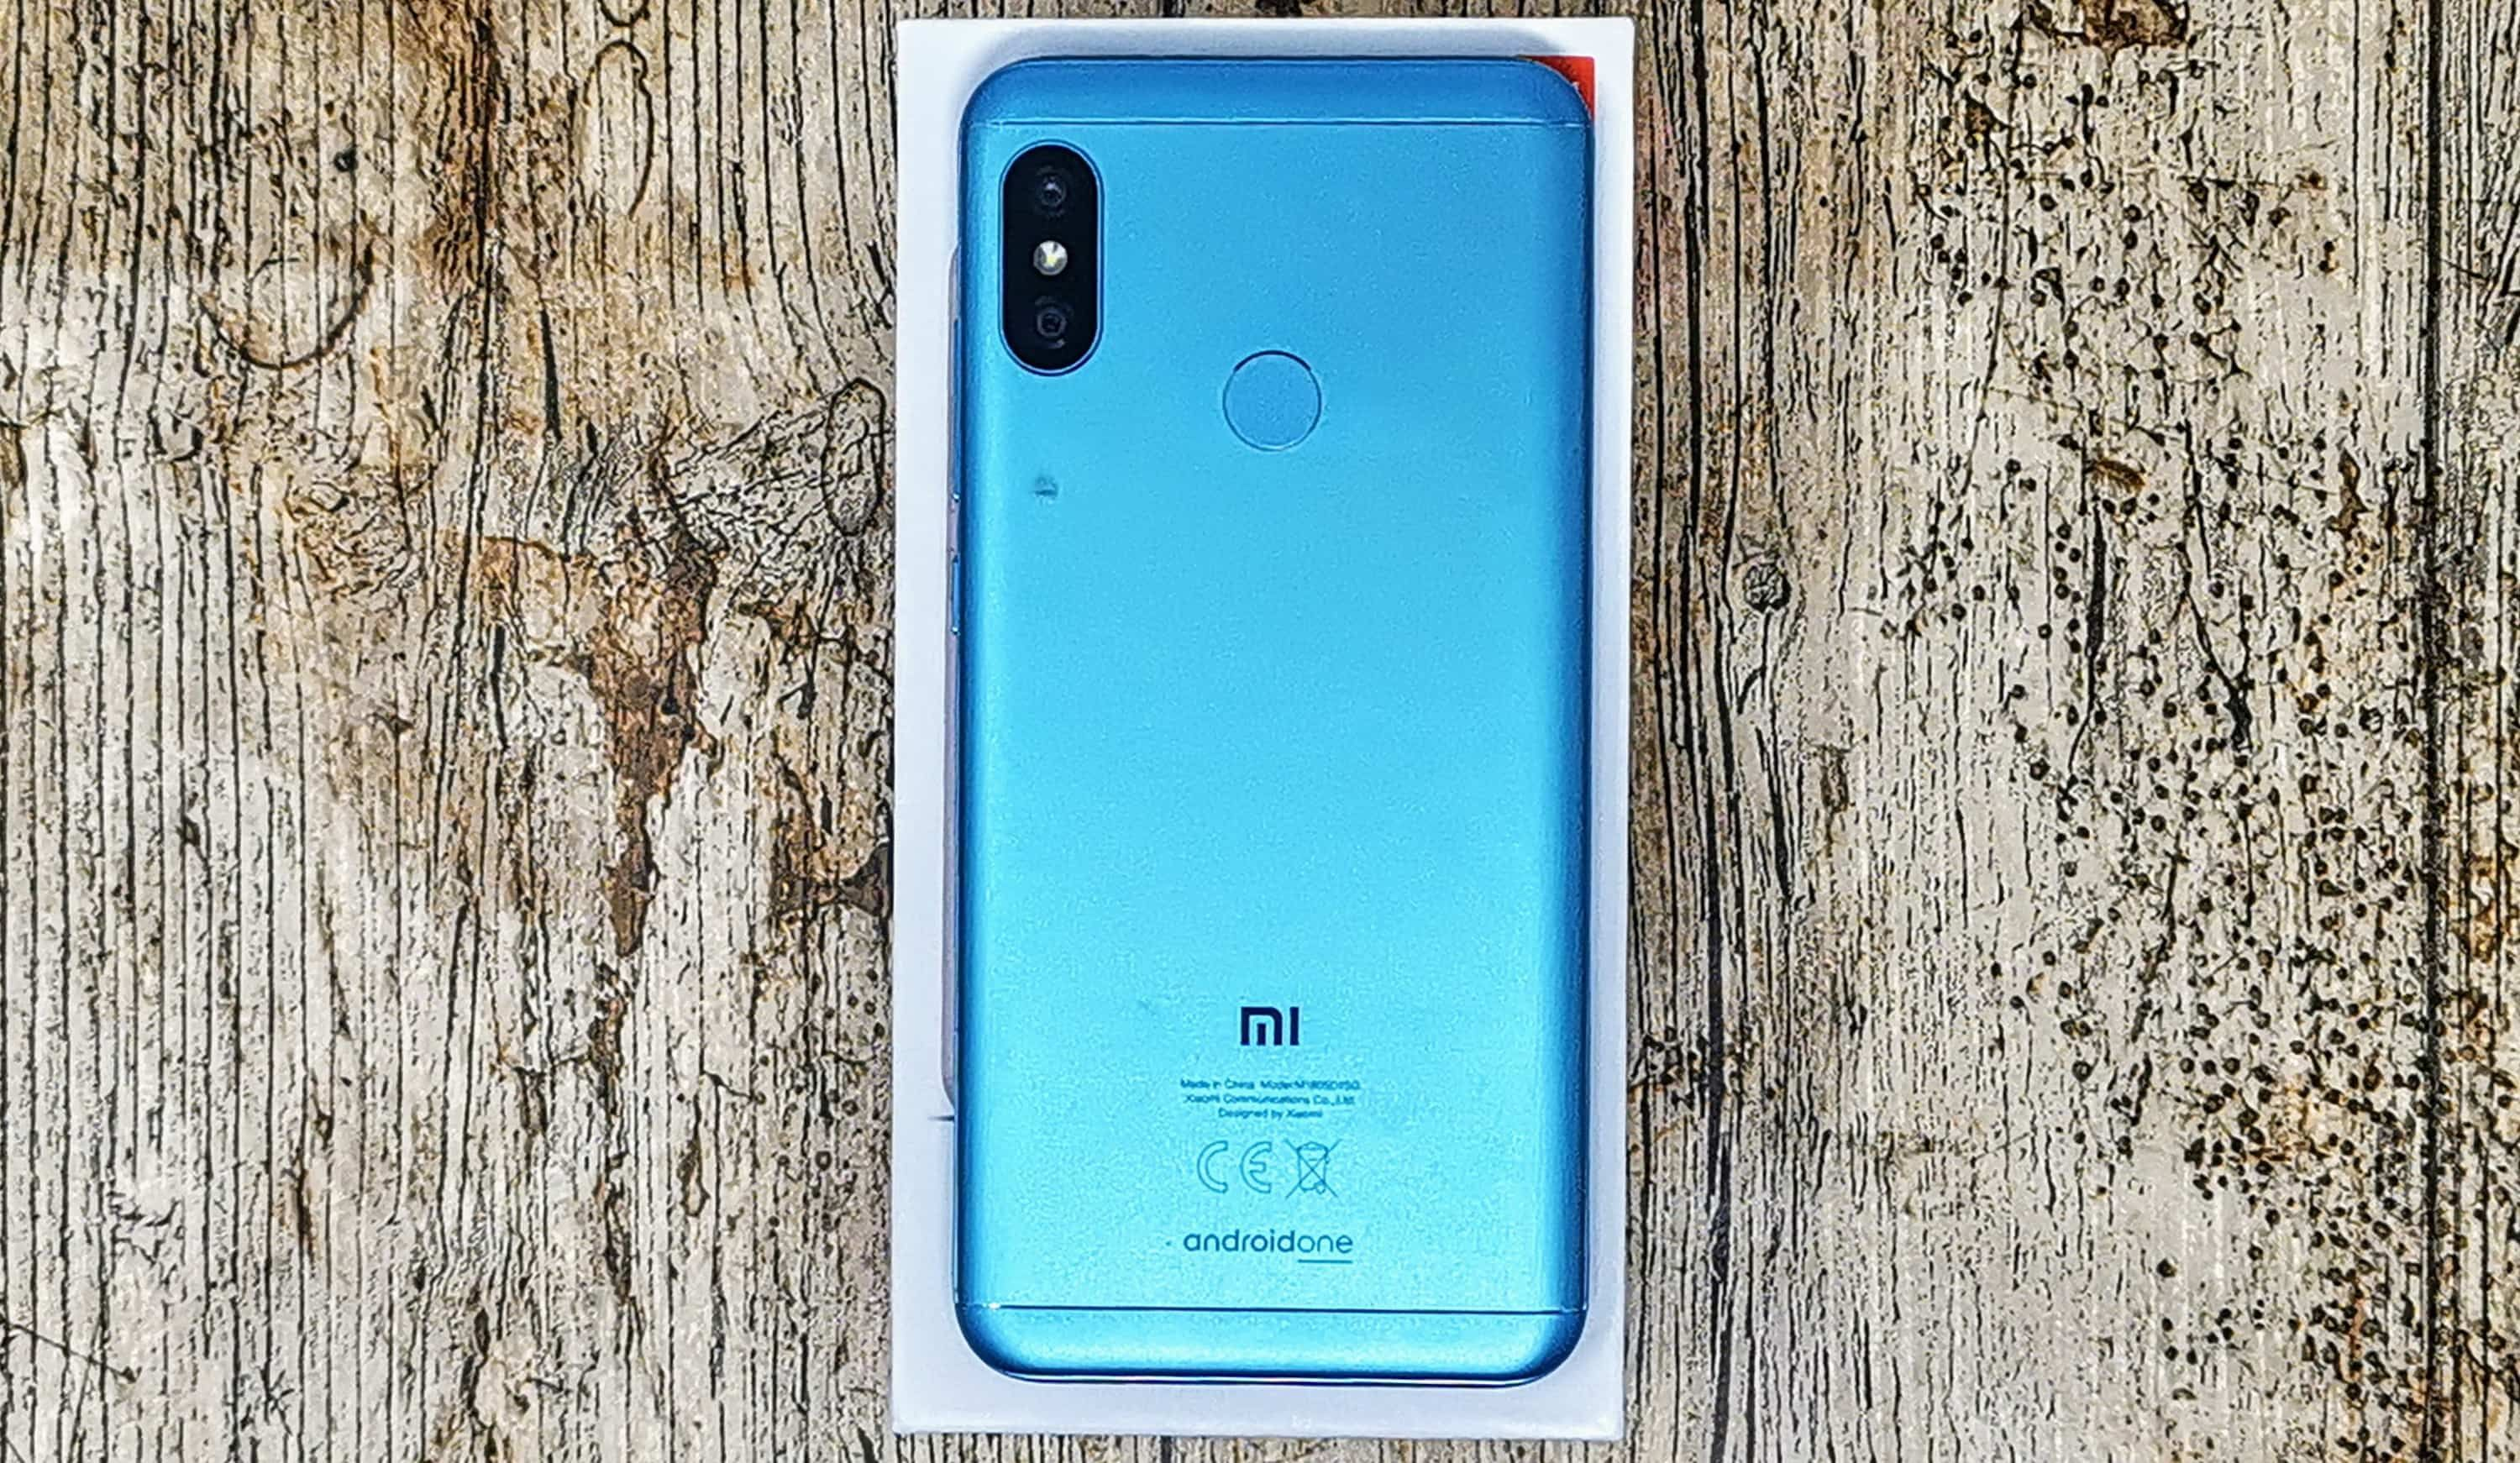 Xiaomi Mi A2 Lite Android One Review (Redmi 6 Pro) | Mighty